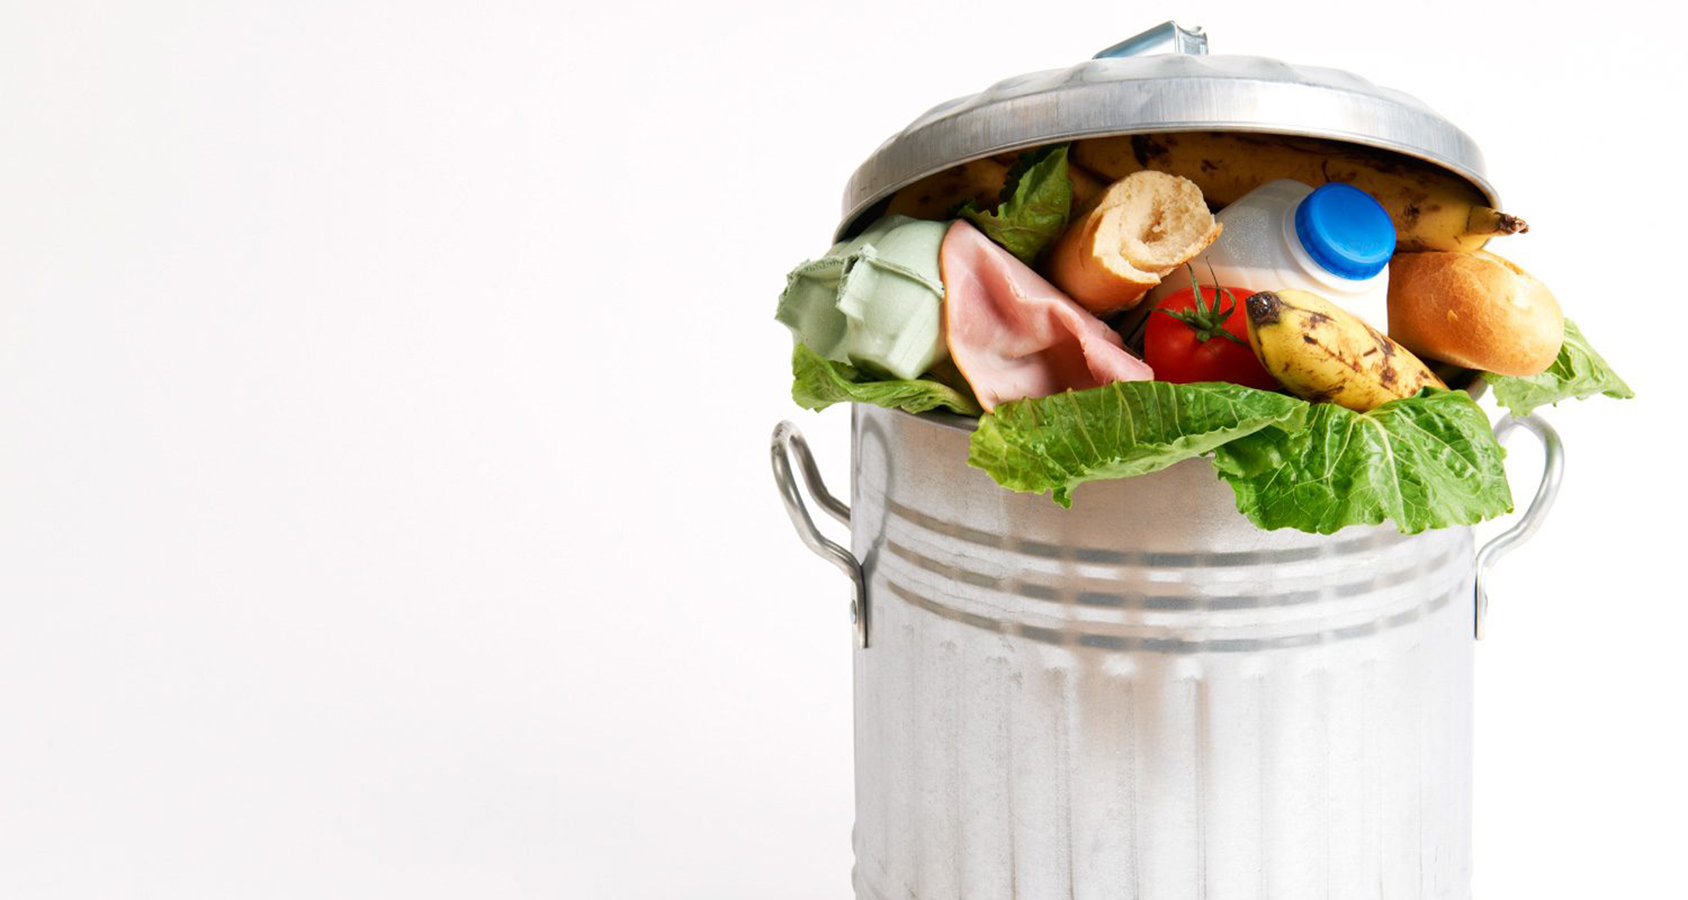 Here's How You Can Reduce Food Waste at Home Using a Meal Delivery Service